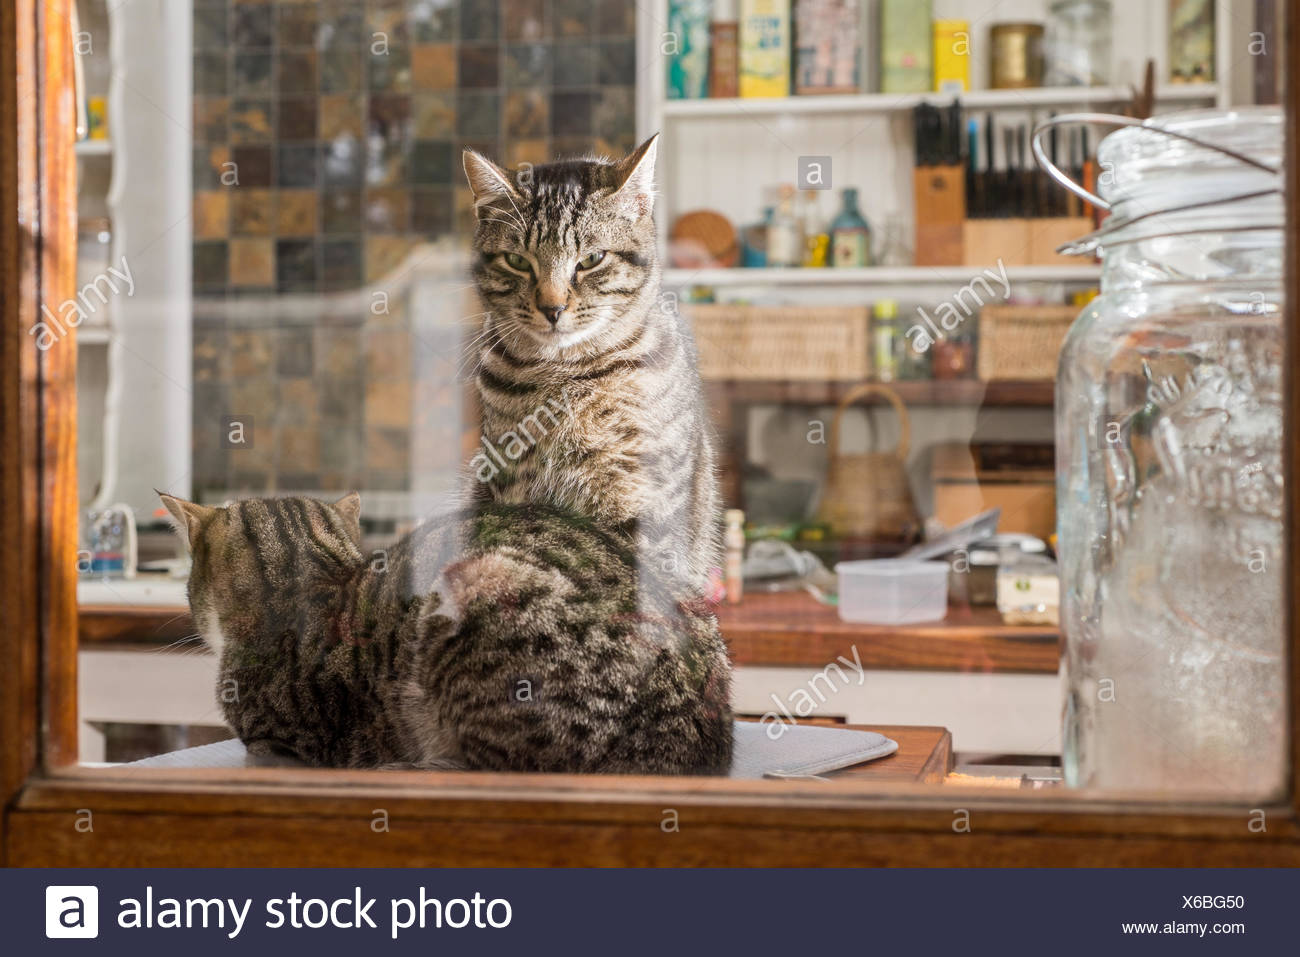 cats in the kitchen garden window two stock photo 279307980 alamy